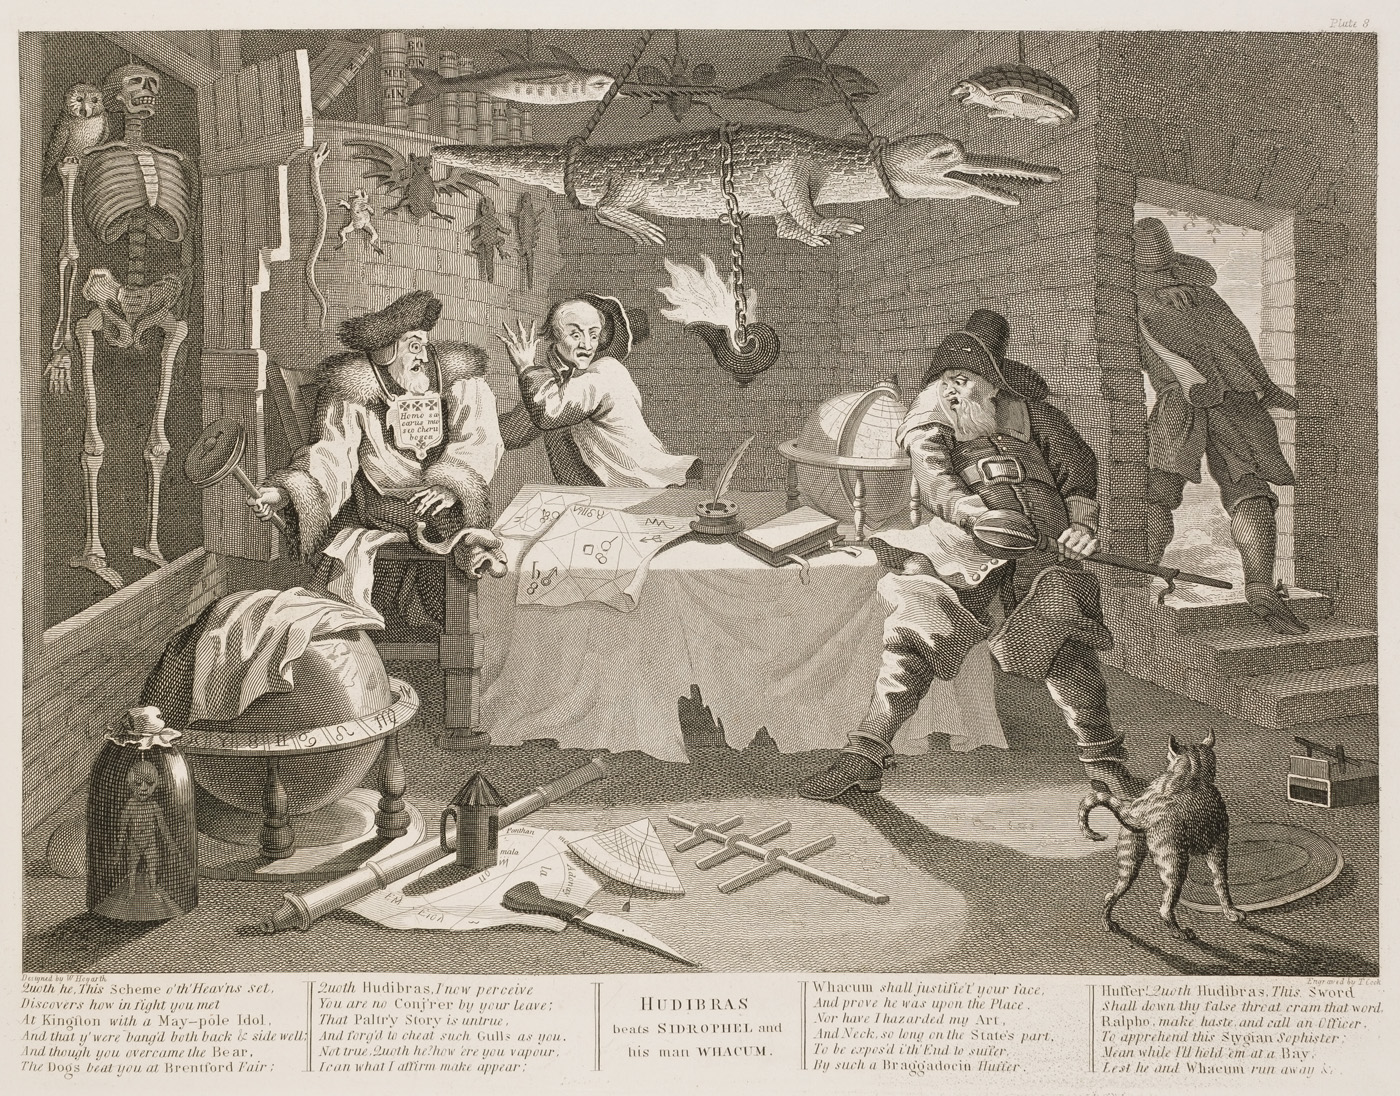 William Hogarth - Hudibras plate 8